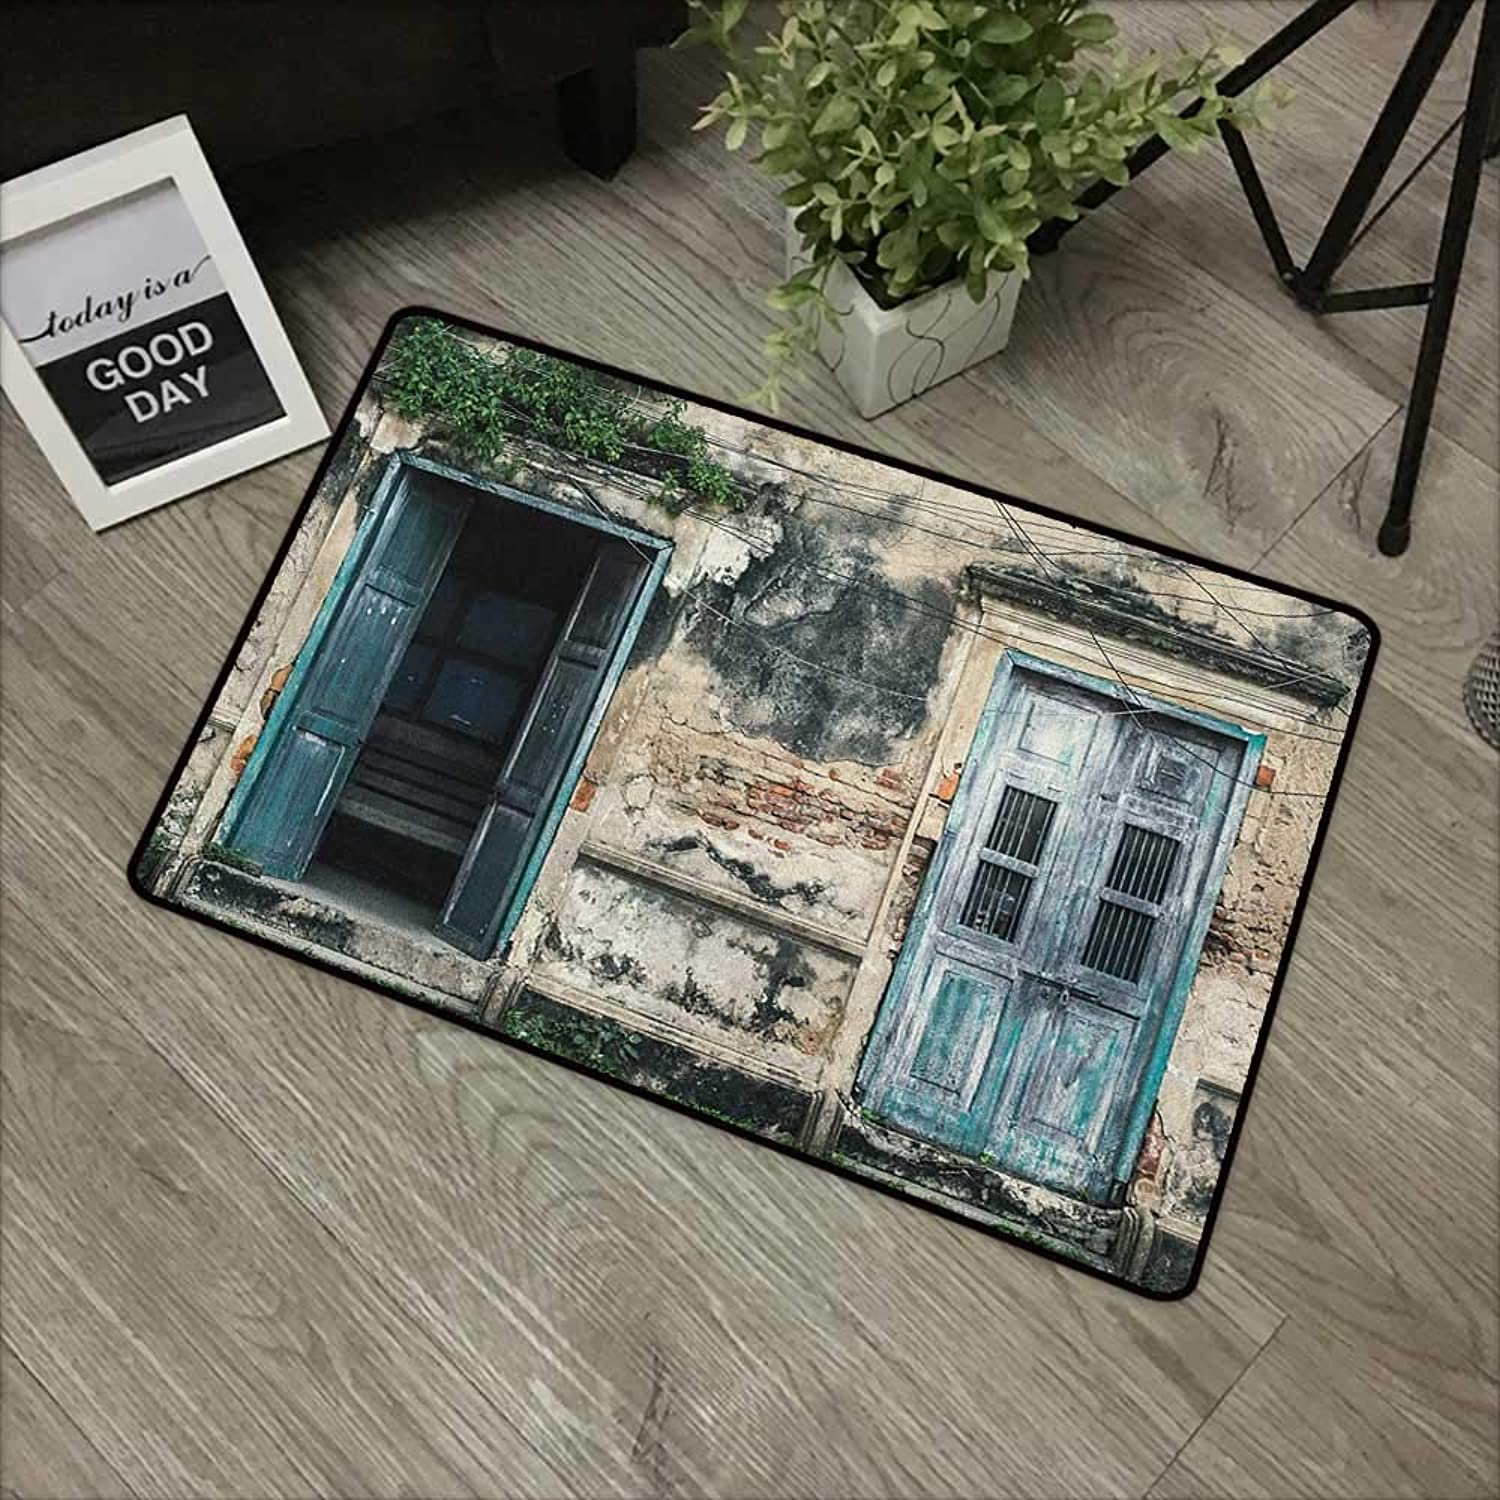 Floor mat W35 x L59 INCH Rustic,Doors of Old Rock House with French Frame Details in Countryside European Past Theme, Teal Grey Non-Slip, with Non-Slip Backing,Non-Slip Door Mat Carpet